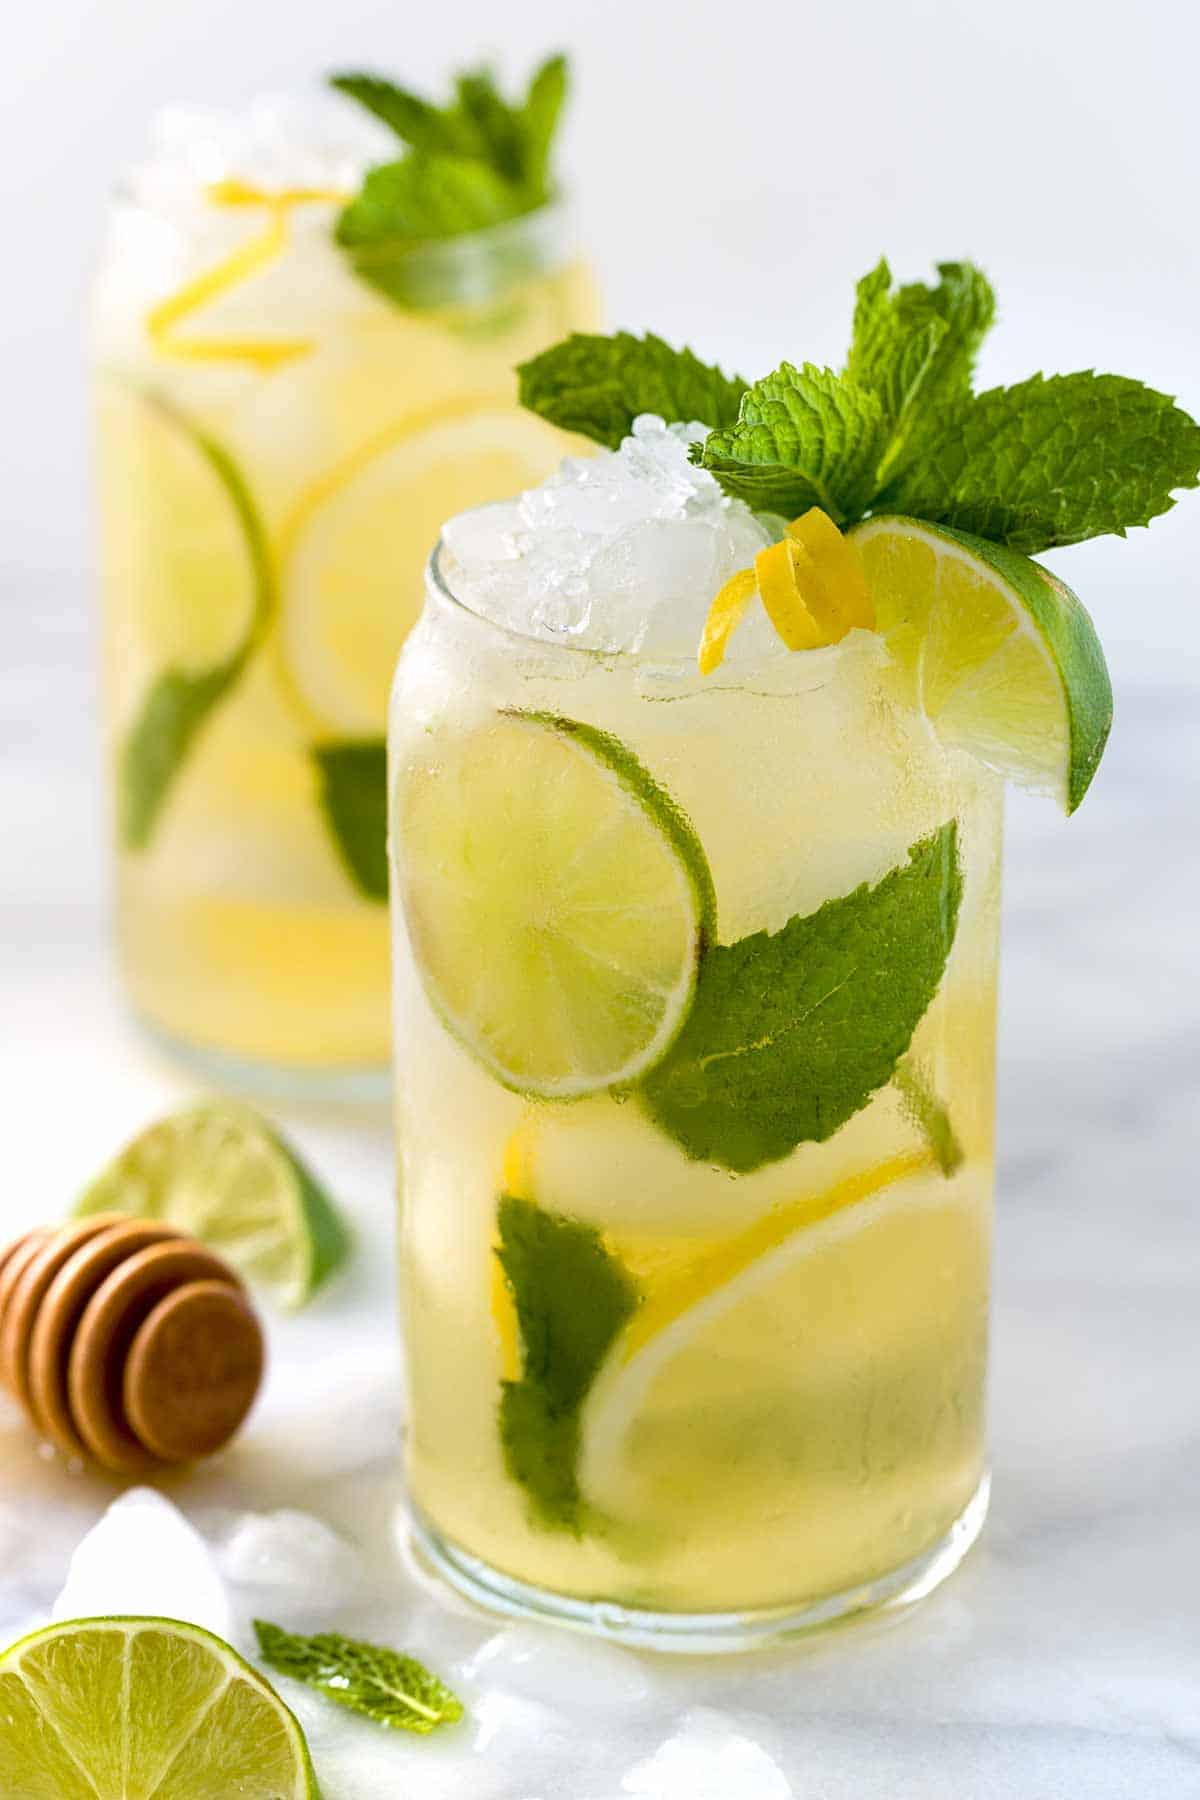 Iced green tea with lemon, lime, and fresh mint is a refreshing and revitalizing beverage for those warm days. Each glass is naturally sweetened with honey and packed with antioxidants.